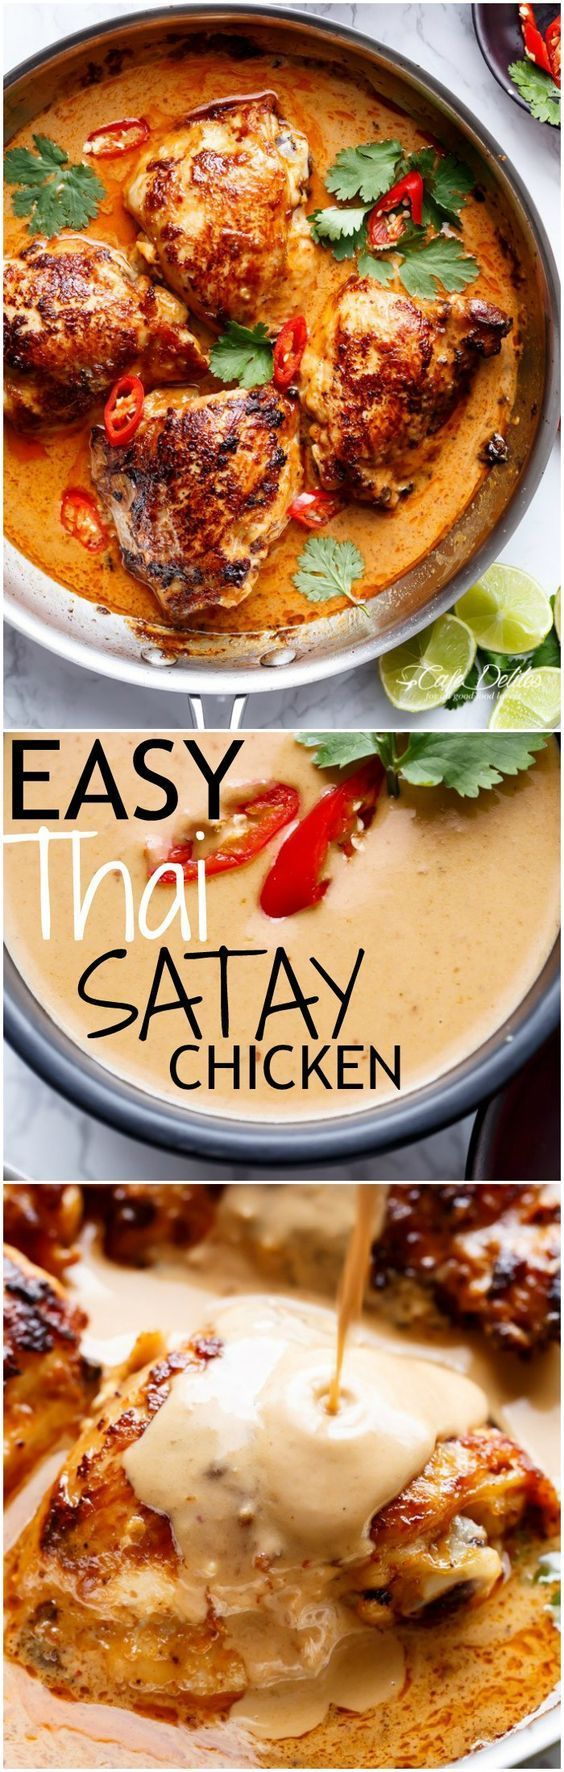 Easy Thai Satay Chicken - With a special ingredient that makes this satay something spectacular in minutes! (Chicken Ingredients Easy Recipes)